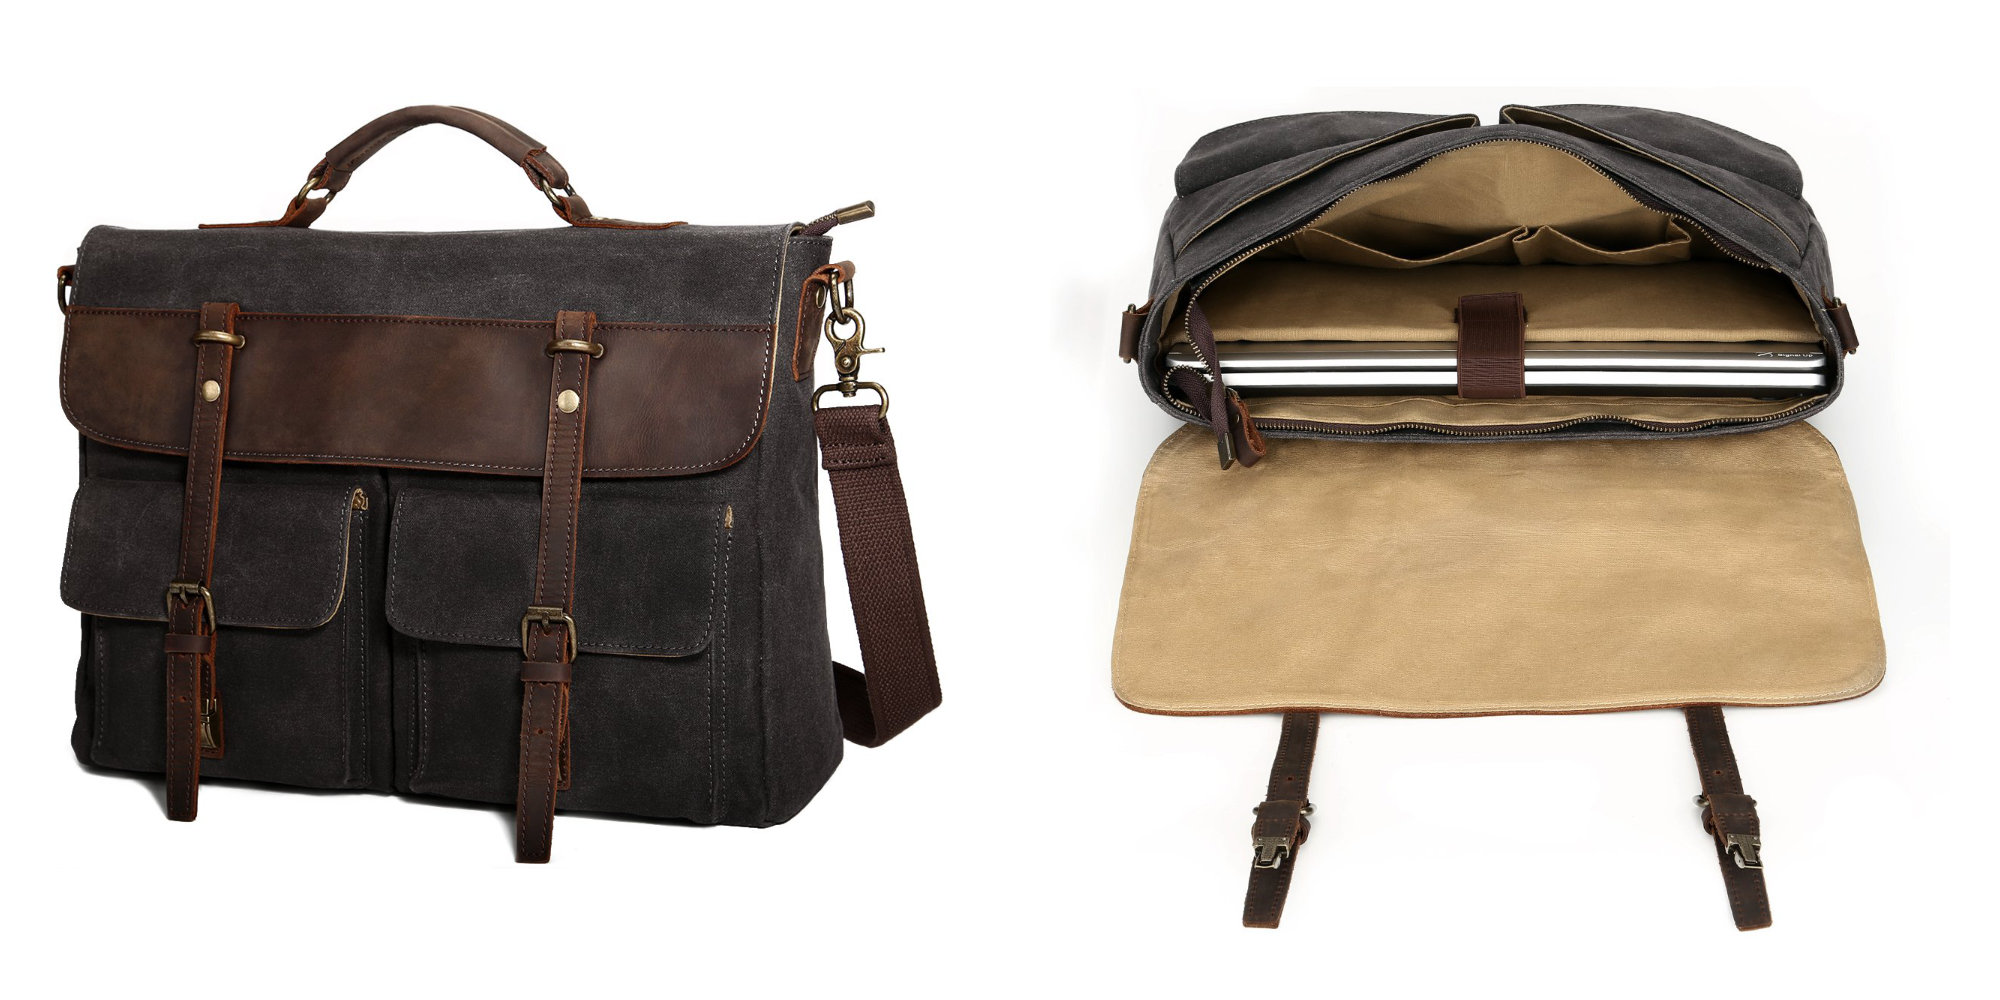 This MacBook-friendly leather messenger bag is down to $25 shipped (Reg. $50)